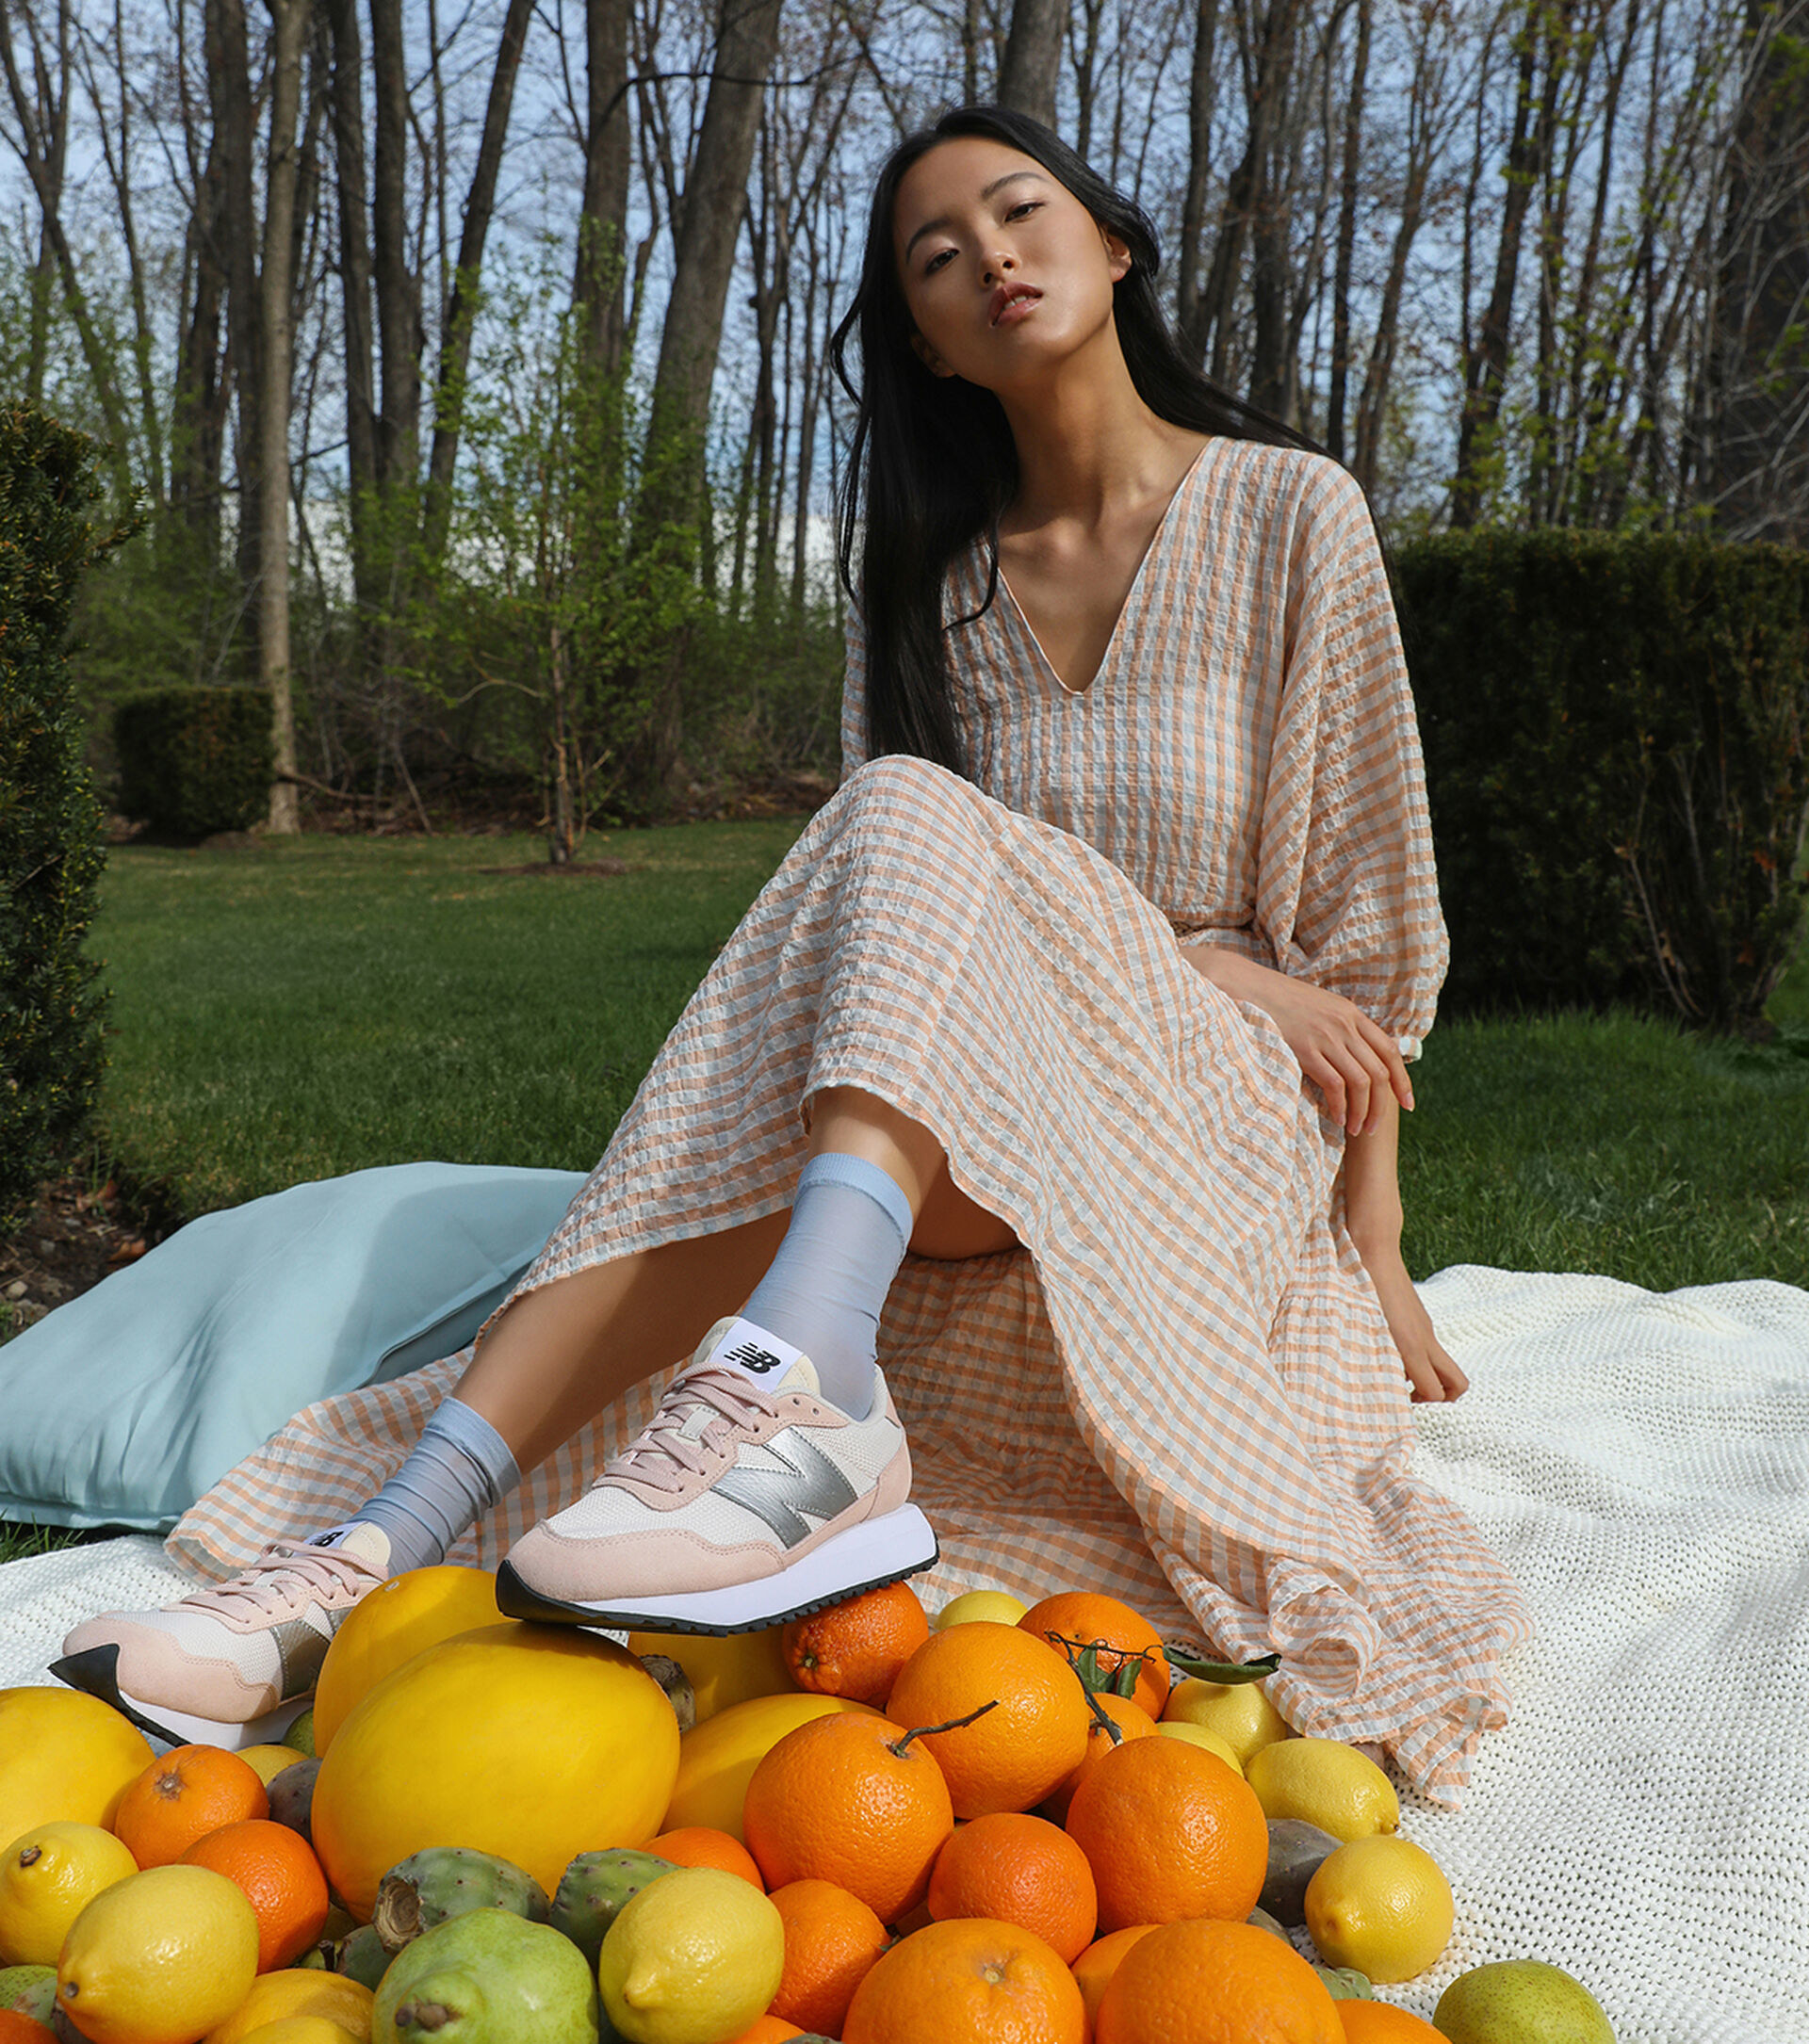 person sitting in a park with the shoes on an a pile of citrus